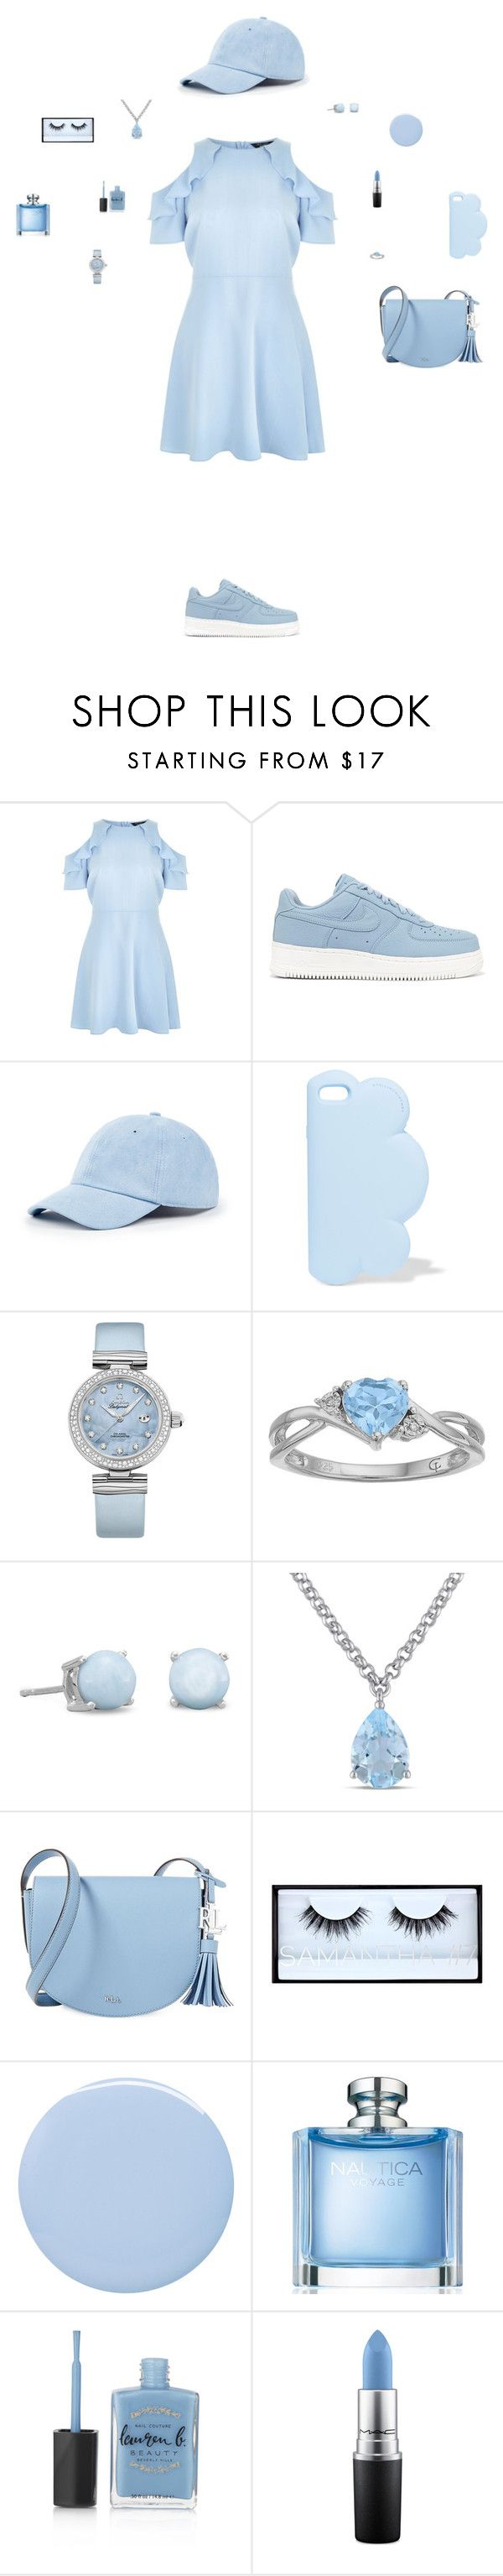 """Untitled #54"" by mayashmila ❤ liked on Polyvore featuring New Look, NIKE, Sole Society, STELLA McCARTNEY, OMEGA, Amour, Lauren Ralph Lauren, Huda Beauty, Deborah Lippmann and Nautica"